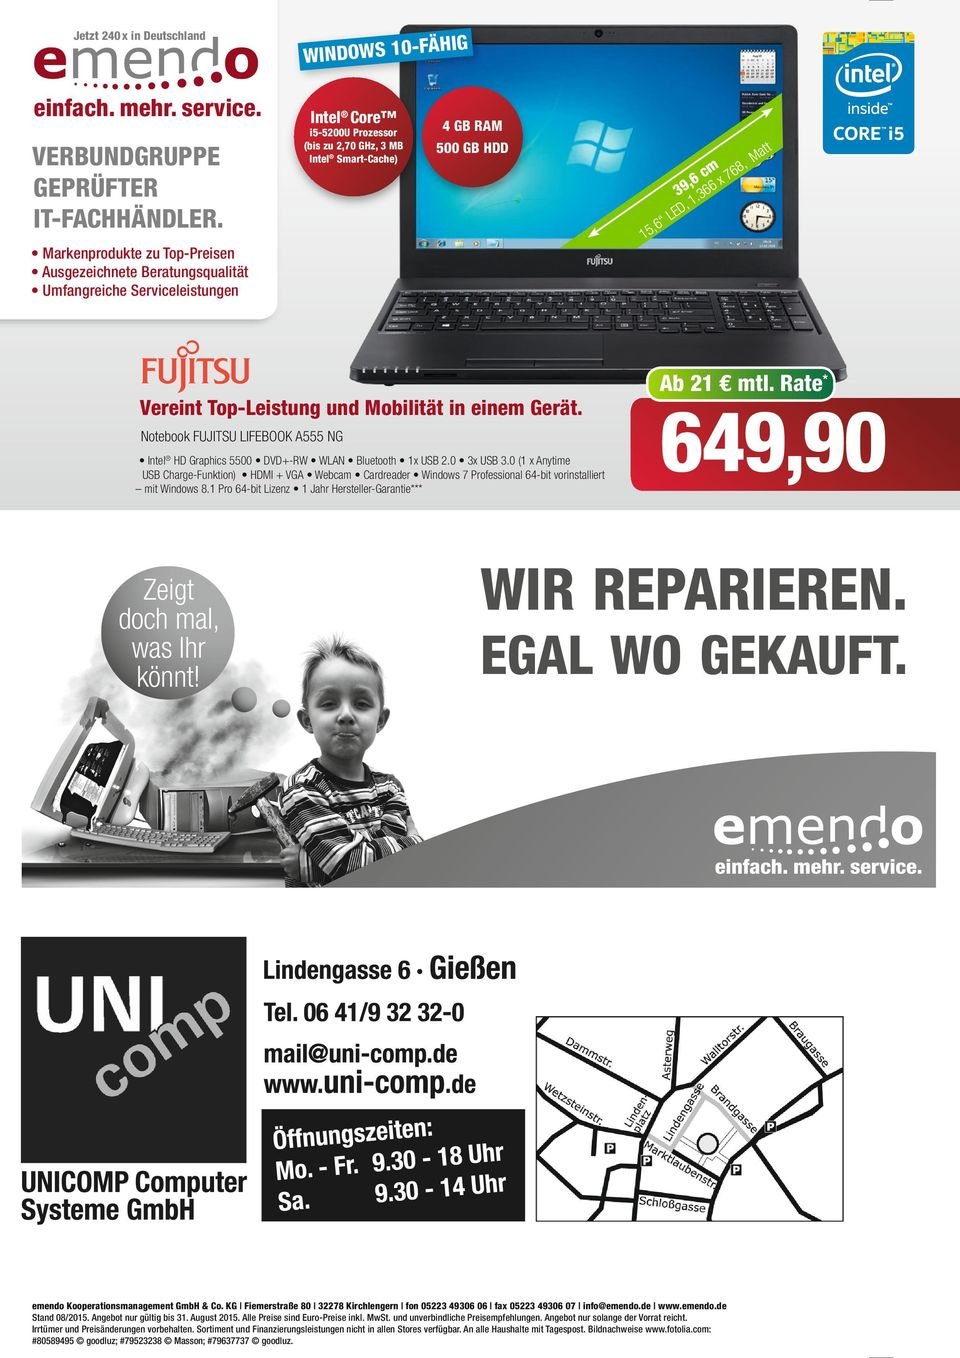 Notebook FUJITSU LIFEBOOK A555 NG Inte HD Graphics 5500 DVD+-RW WLAN Buetooth x USB 2.0 3x USB 3.